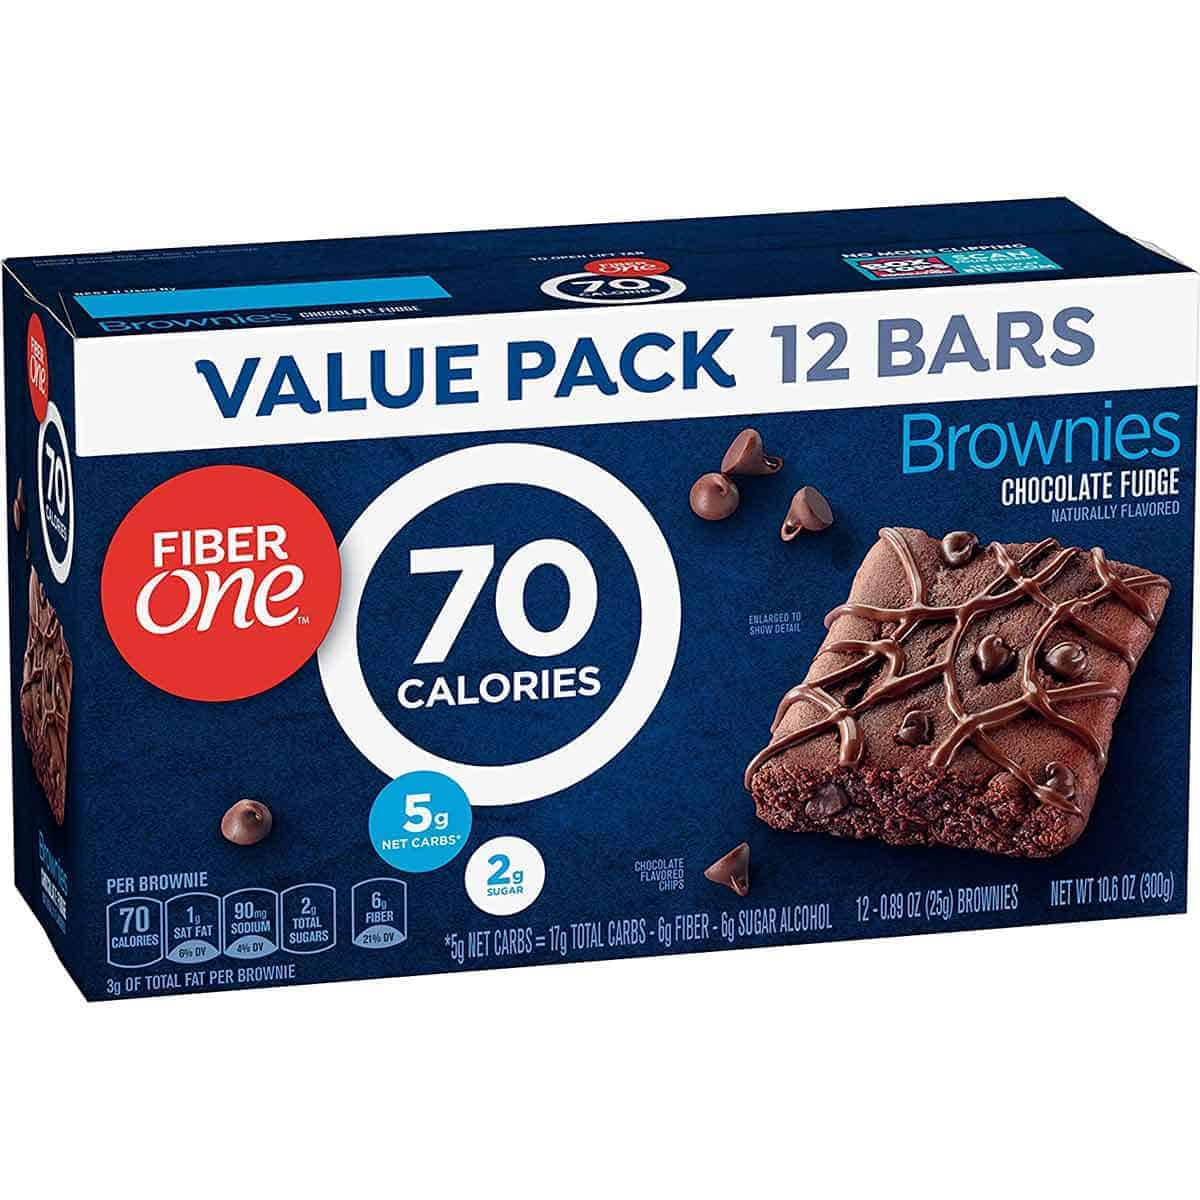 A box of Fibre One 70 Calorie Chocolate Fudge Brownies